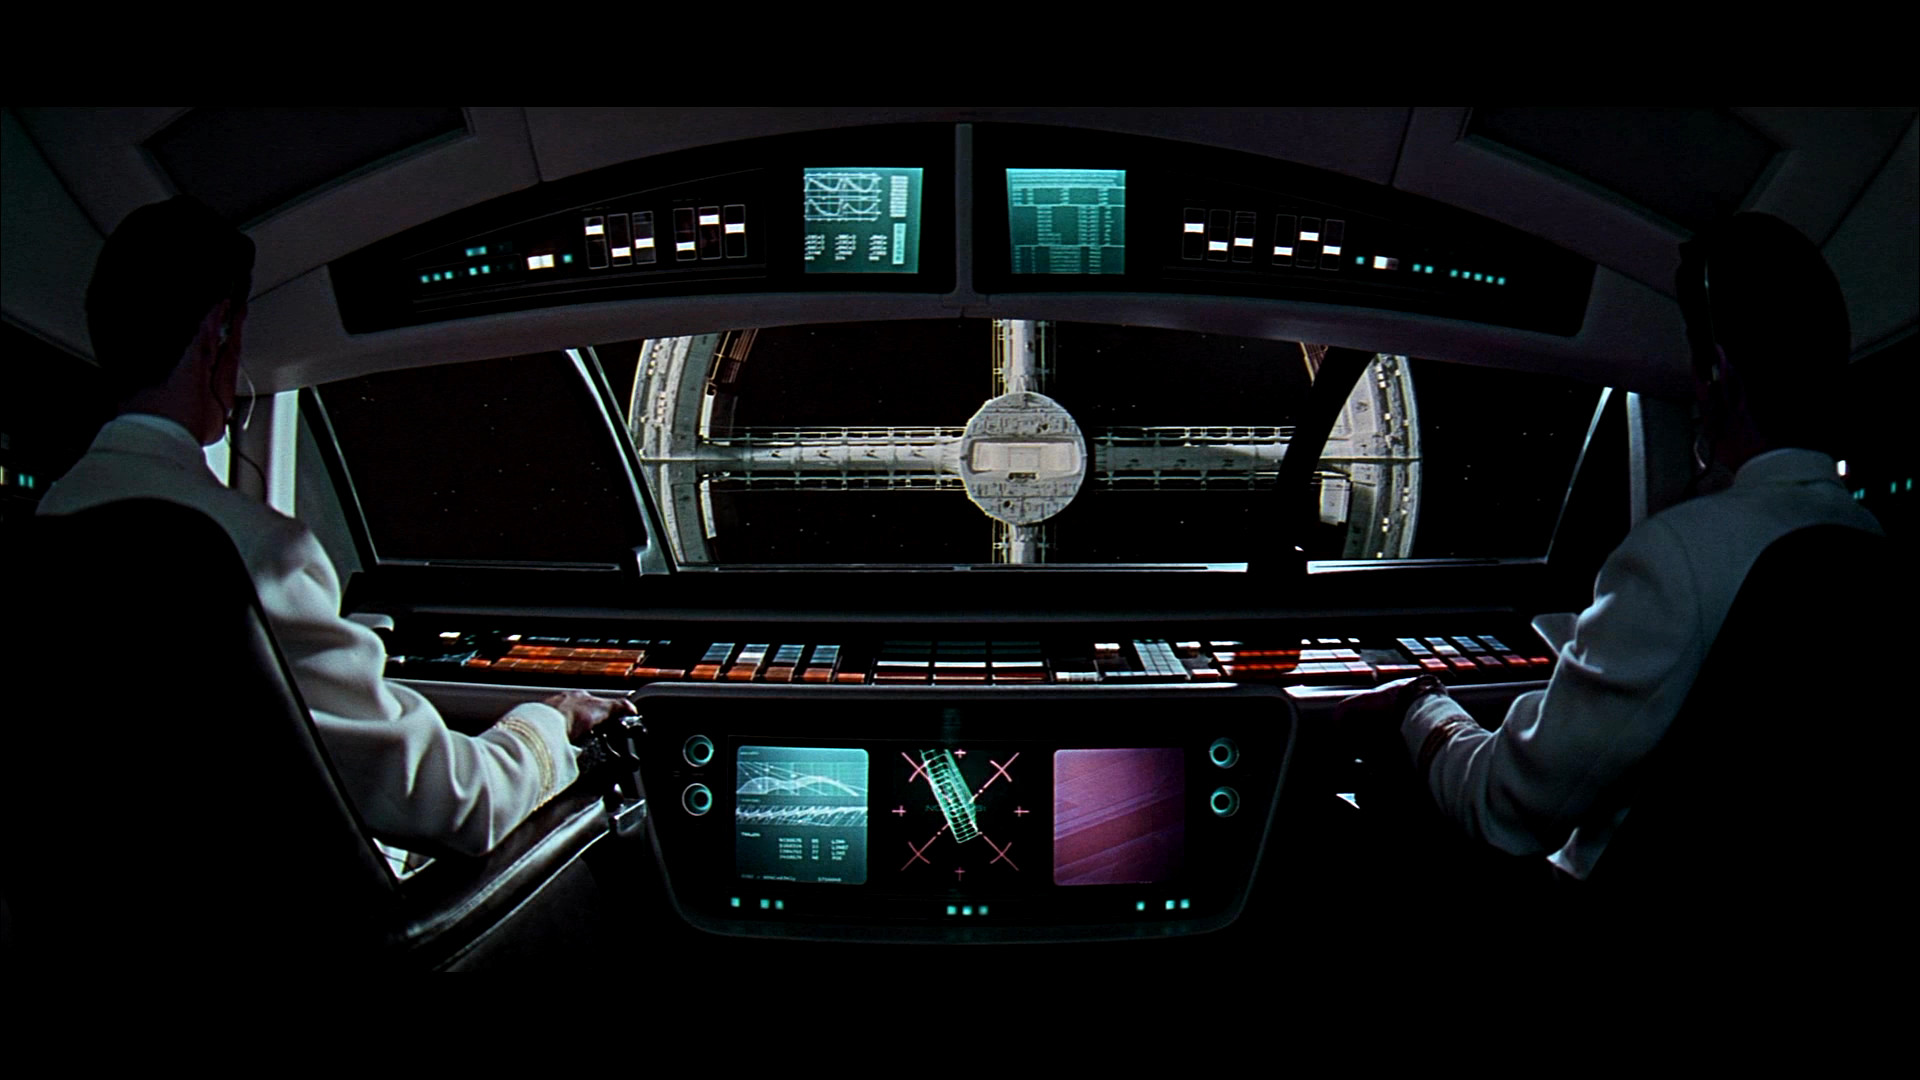 2001 a Space Odyssey Wallpaper (76+ images)